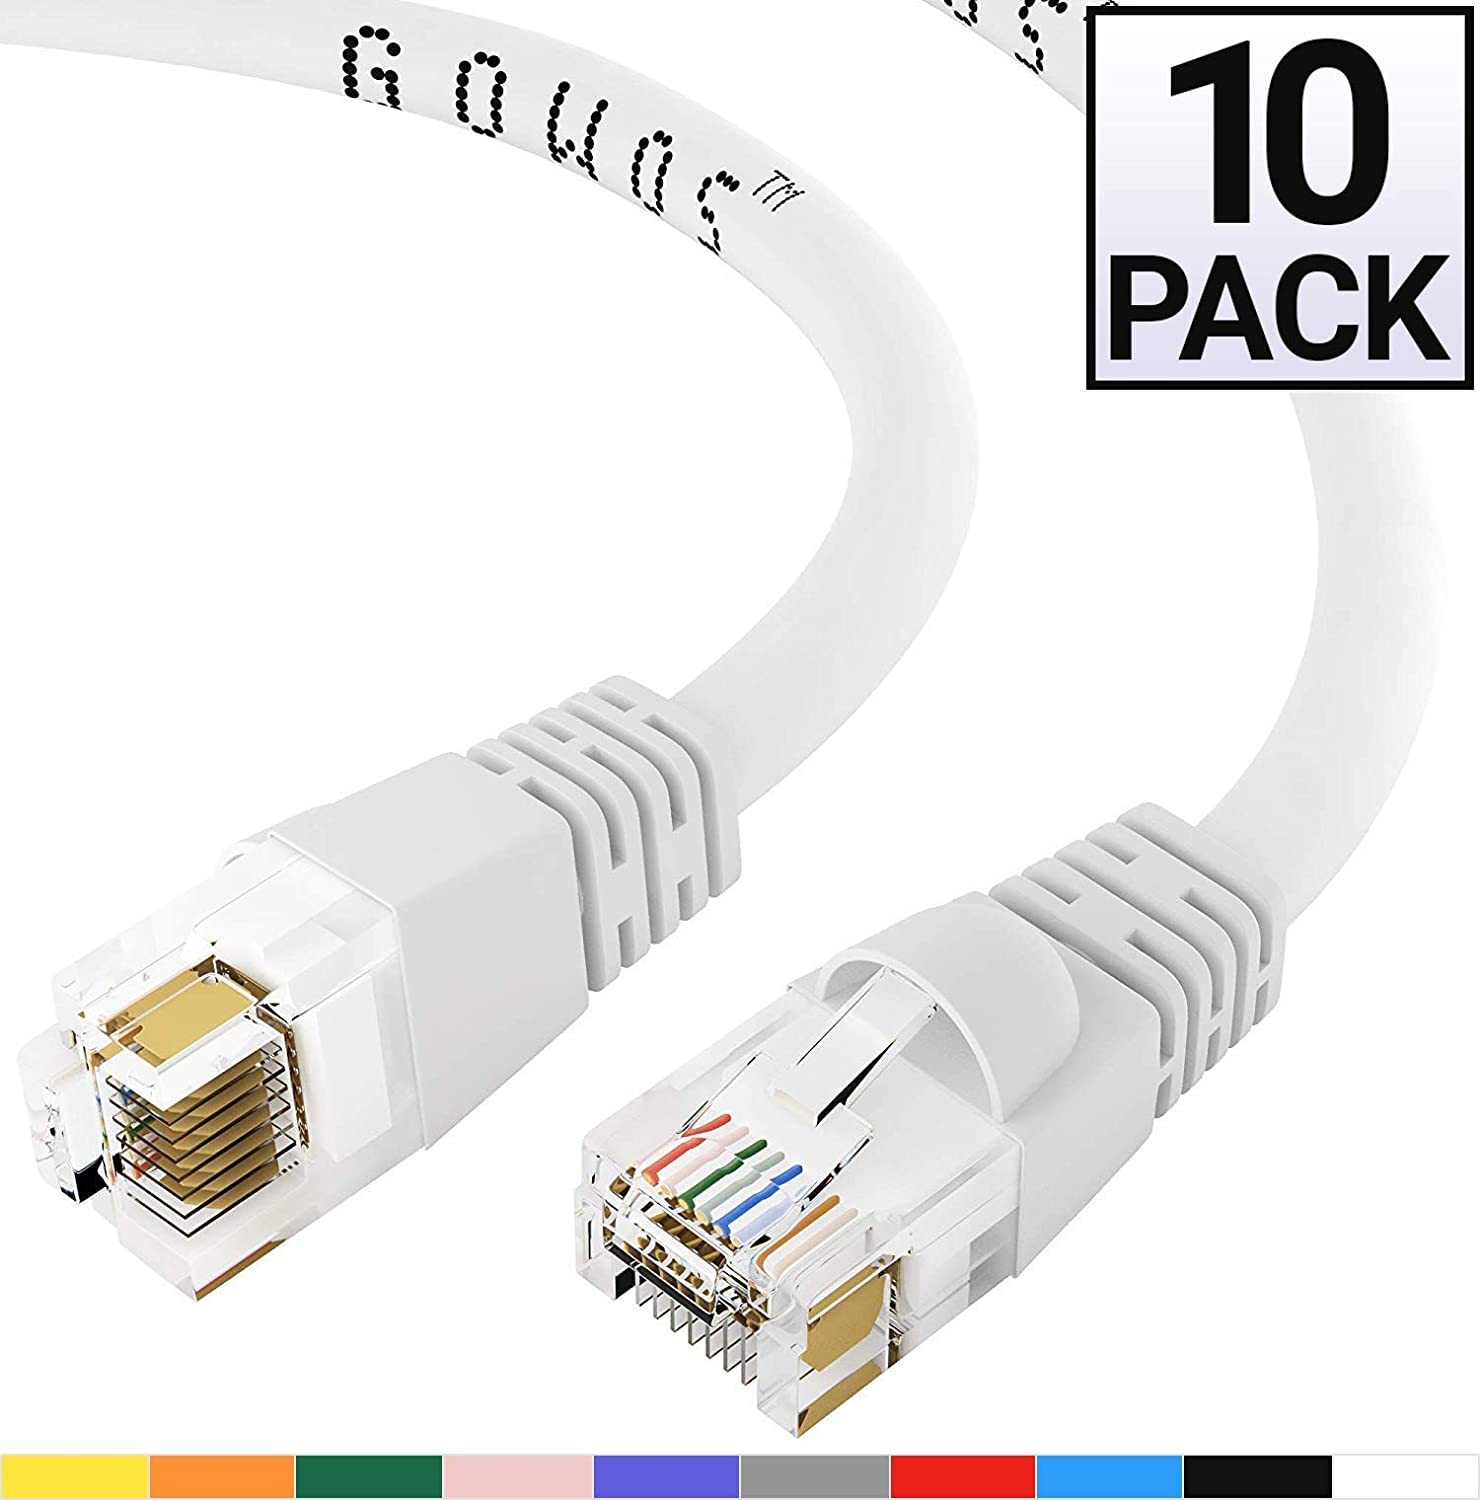 Computer Network Cable with Snagless Connector UTP RJ45 10Gbps High Speed LAN Internet Patch Cord 3 Feet - Green GOWOS Cat6a Ethernet Cable Available in 28 Lengths and 10 Colors